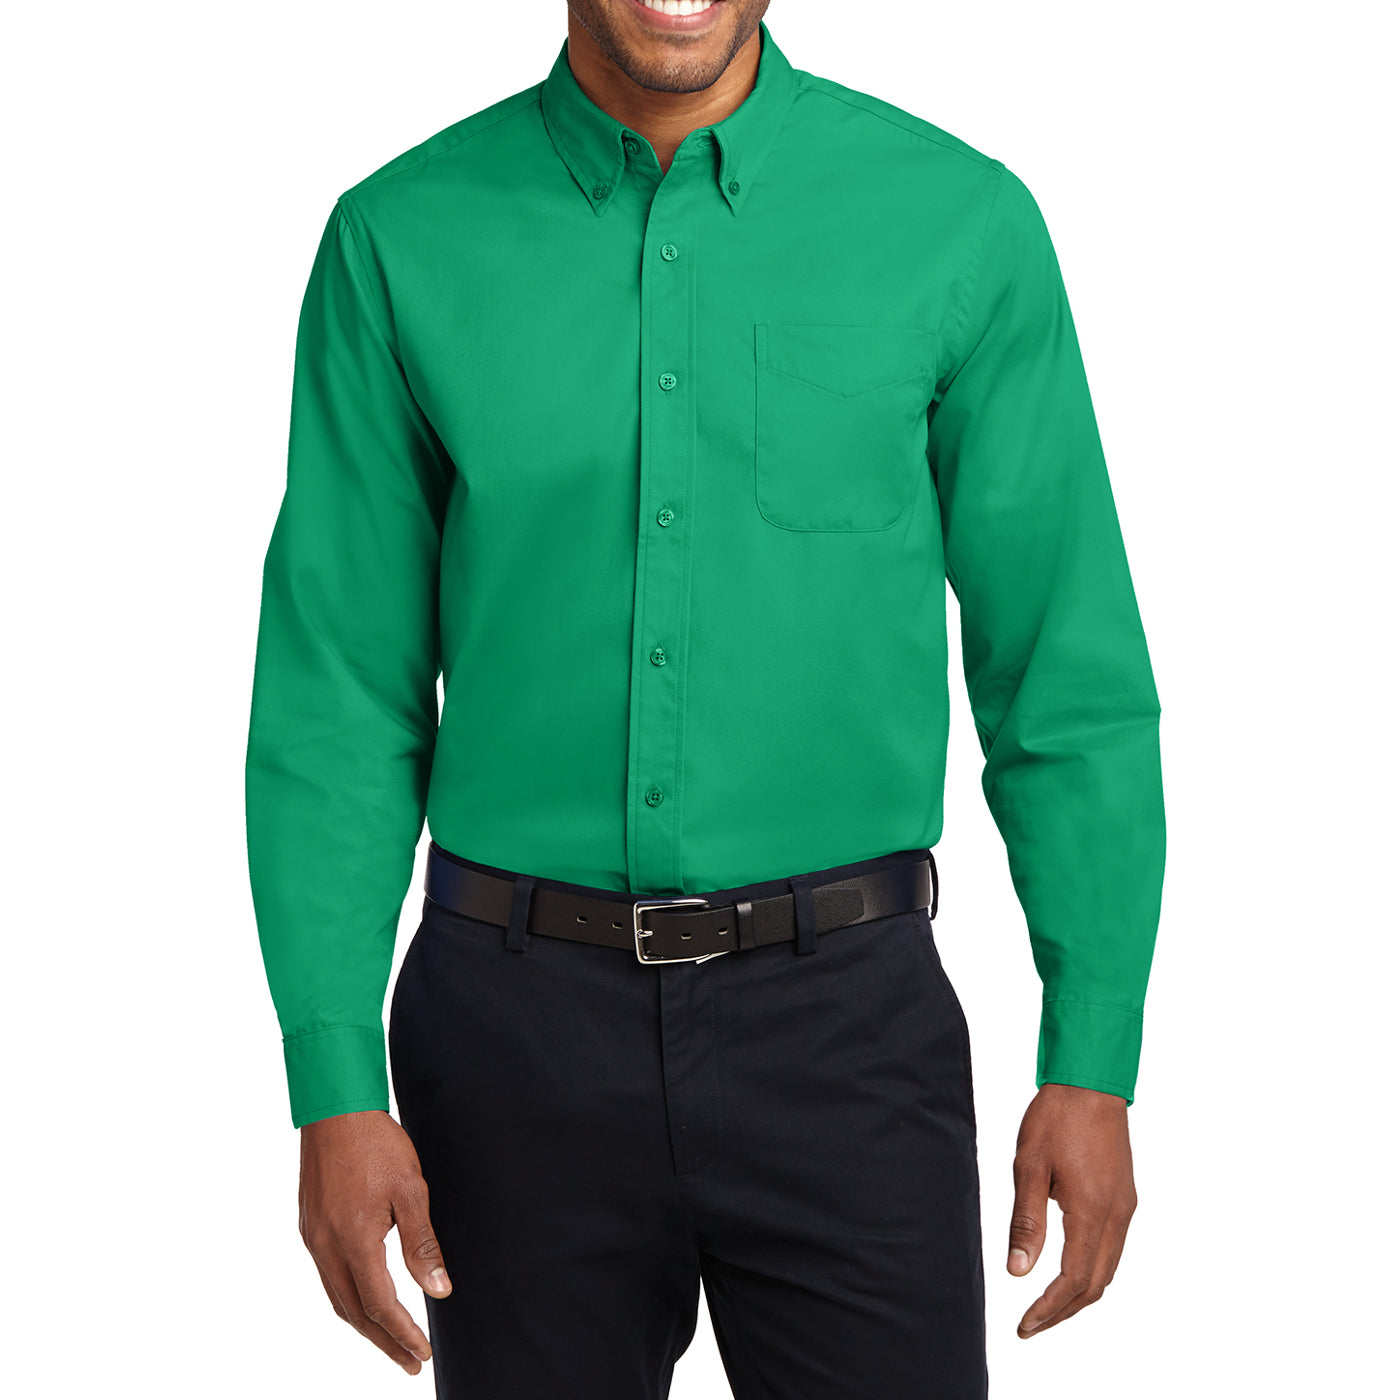 Men's Long Sleeve Easy Care Shirt - Court Green - Front